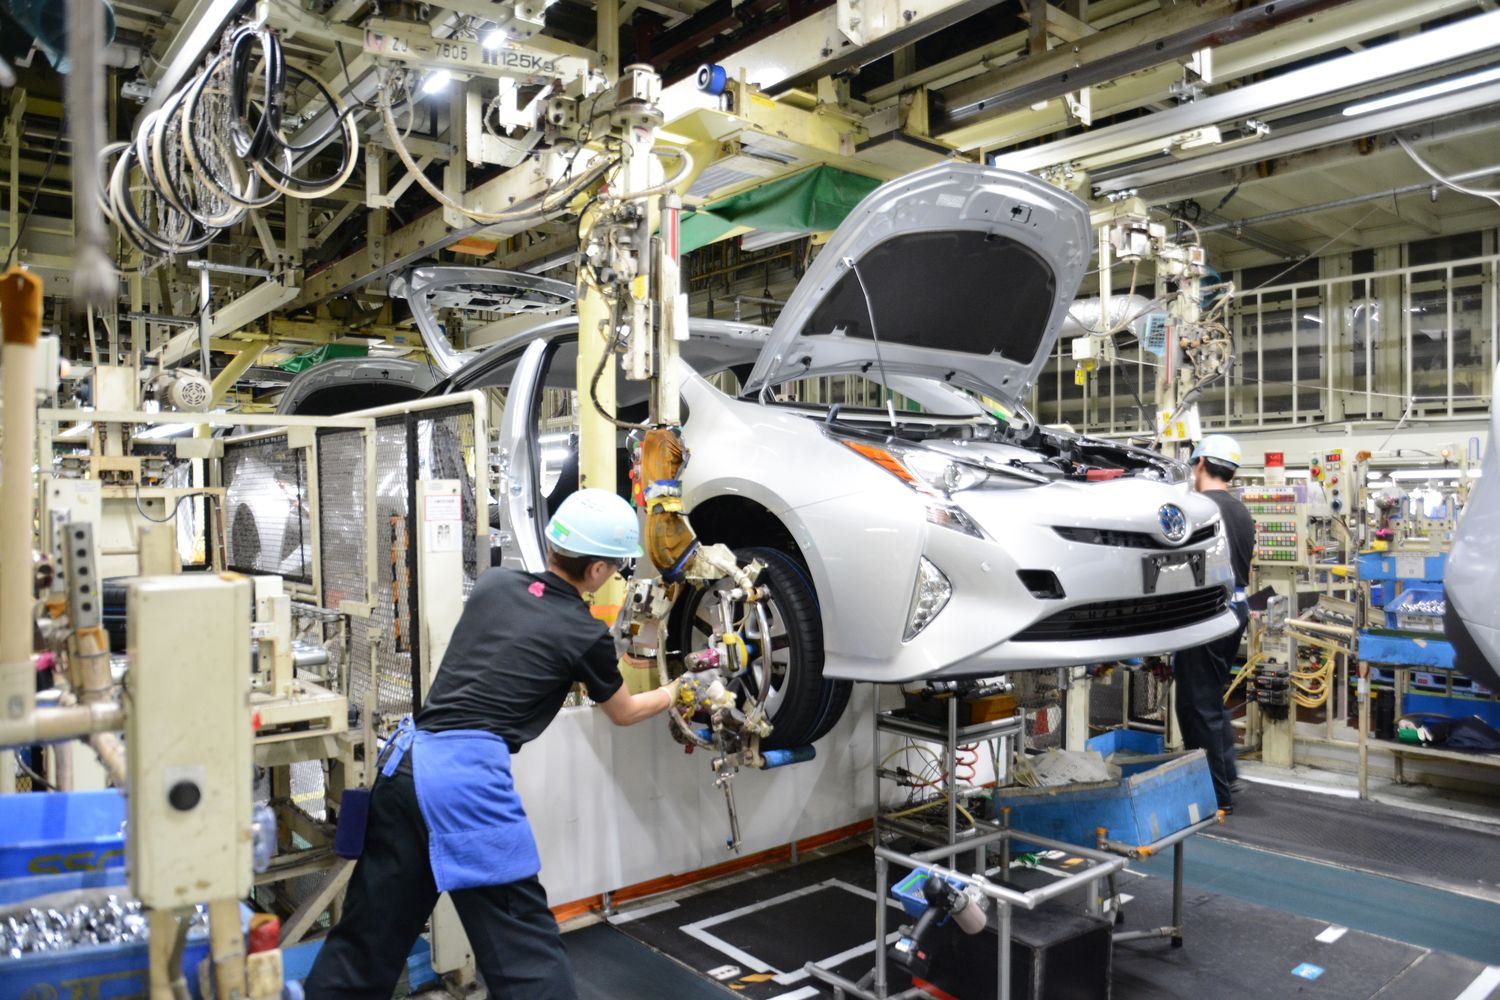 Toyota Prius' assembly line at the Tsutsumi plant in Aichi, Japan, in 2016. The model is at the centre of a tax case in Thailand and a foreign corrupt practices probe involving Thai judges in the US. (Toyota Motor Corp photo)